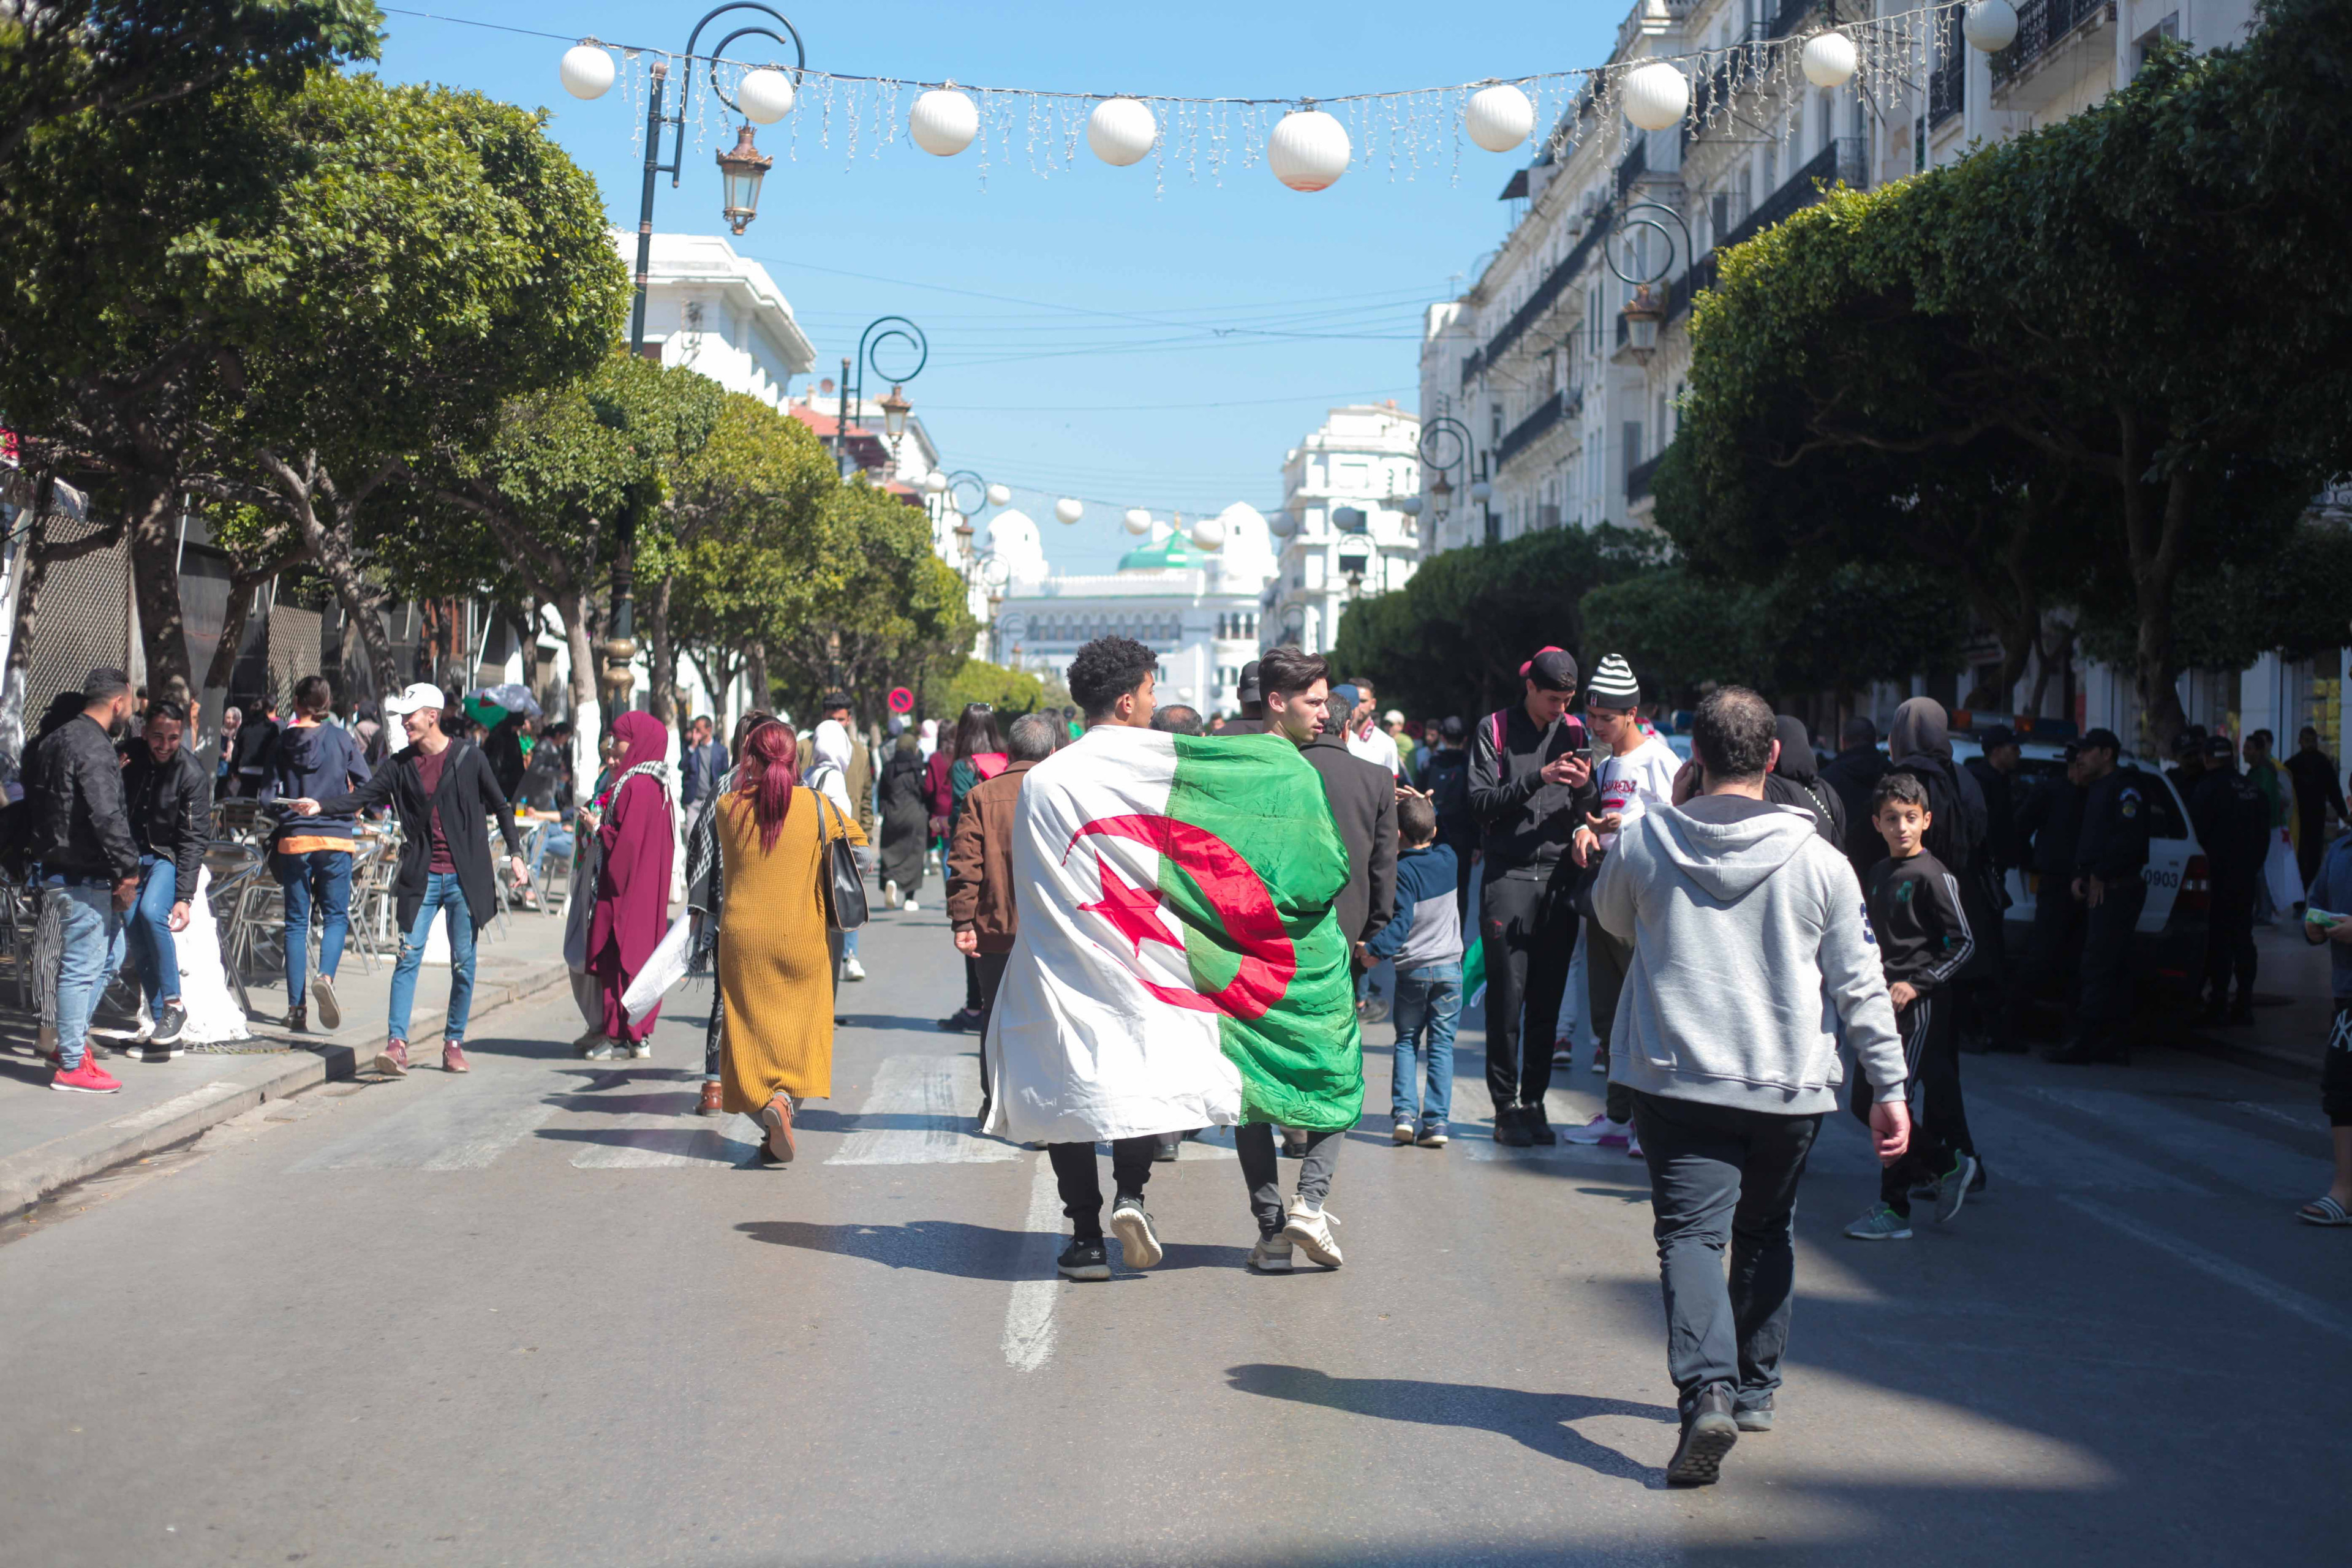 12 March 2019: Two friends wrapped in the Algerian flag march in front of the University of Algiers during student protests, which have taken place every Friday for the past month. (Photographs by Maher Mezhai)